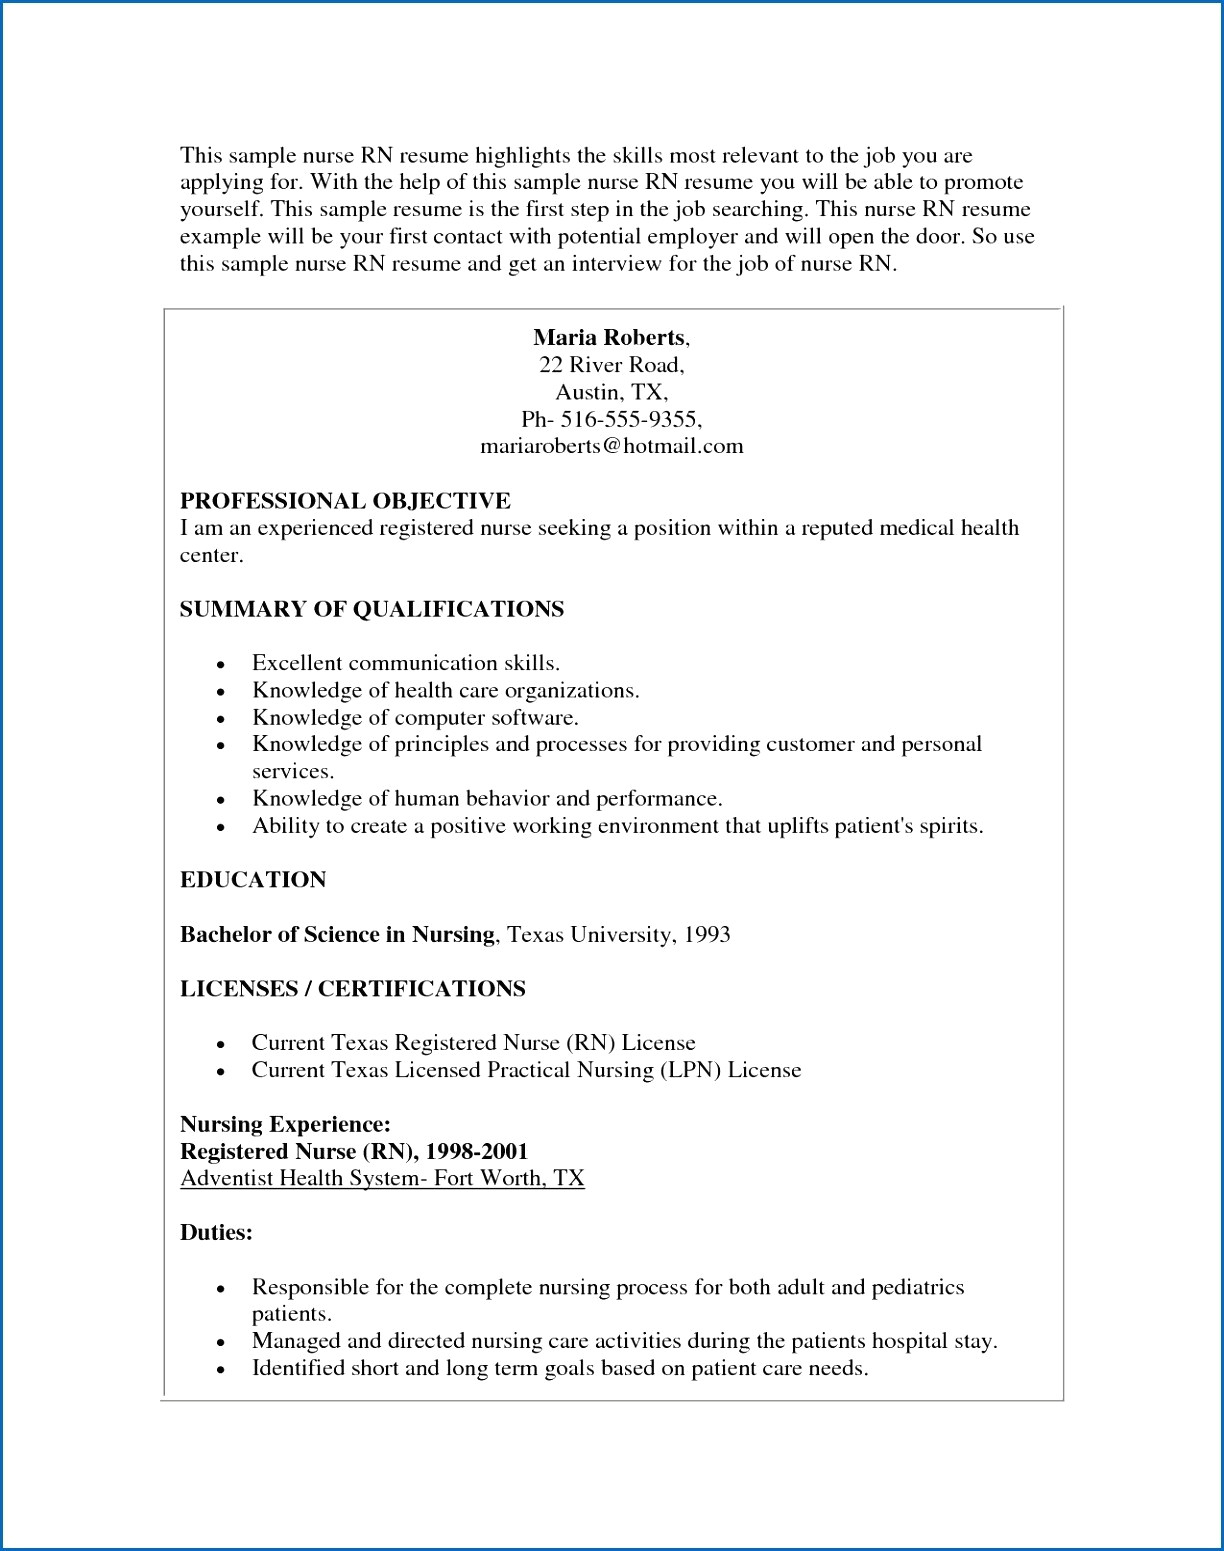 Resume for Environmental Services - 41 Concepts Example Nursing Resume